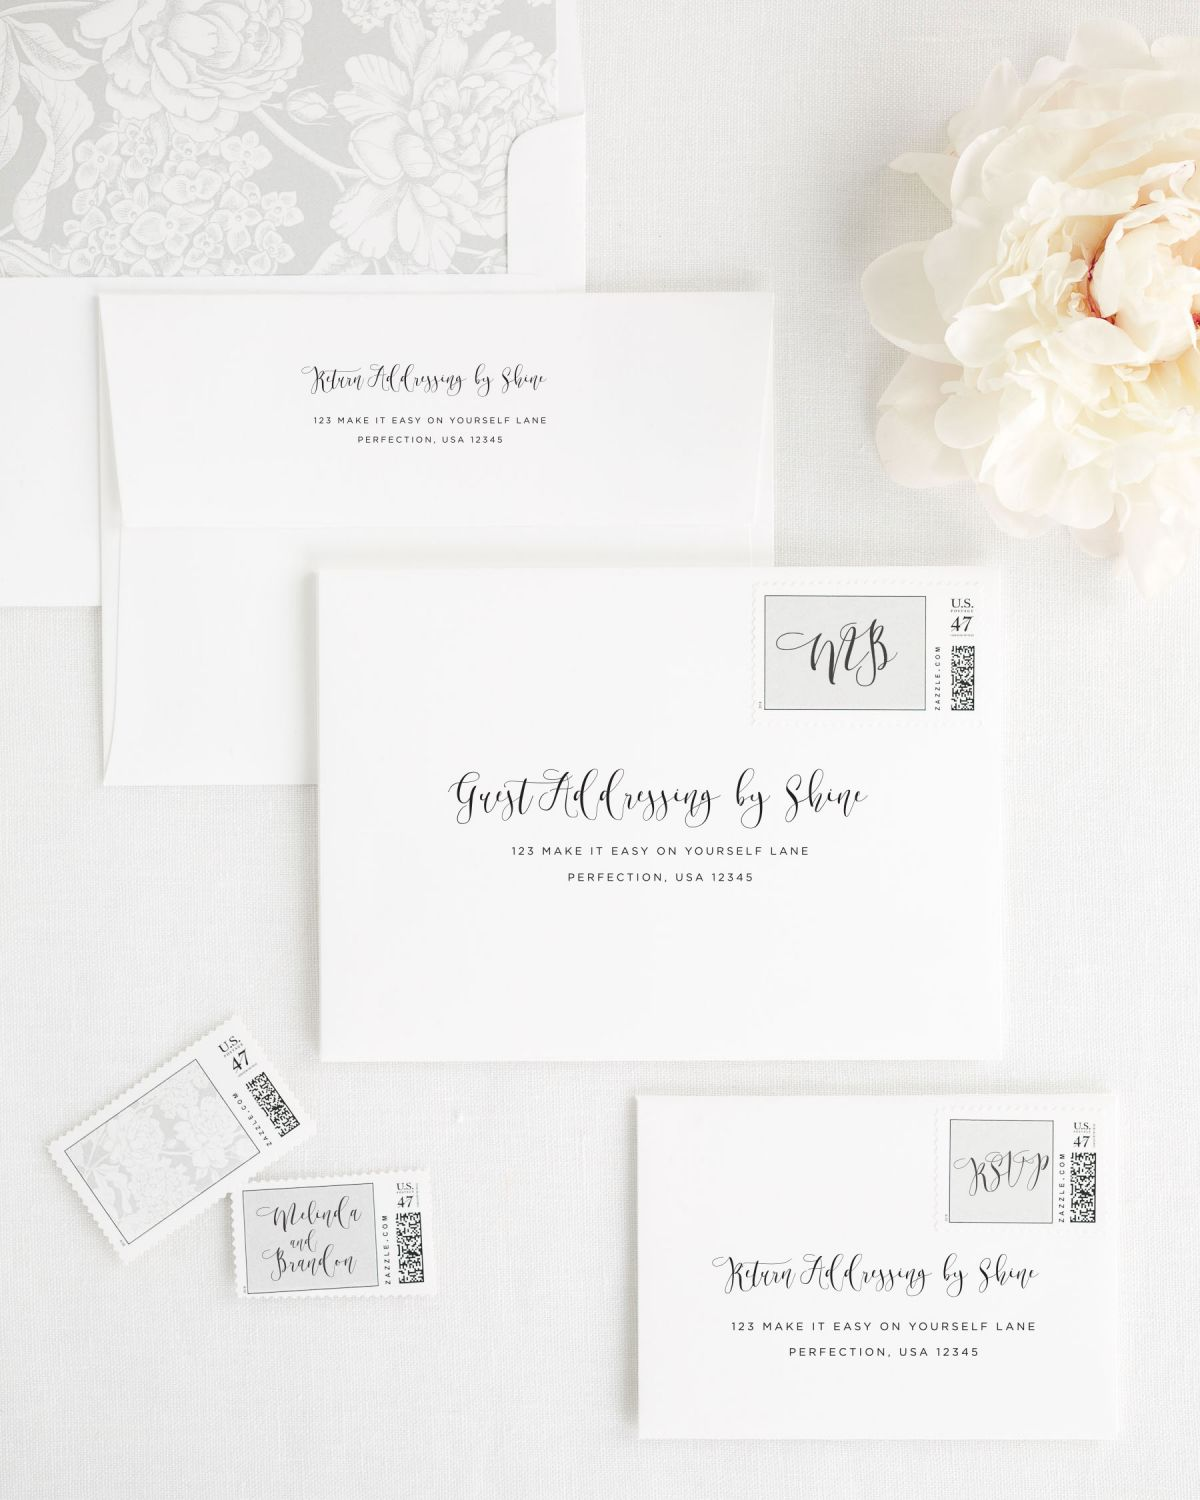 Wedding Invitations Envelopes with Guest Addressing and Custom Stamps